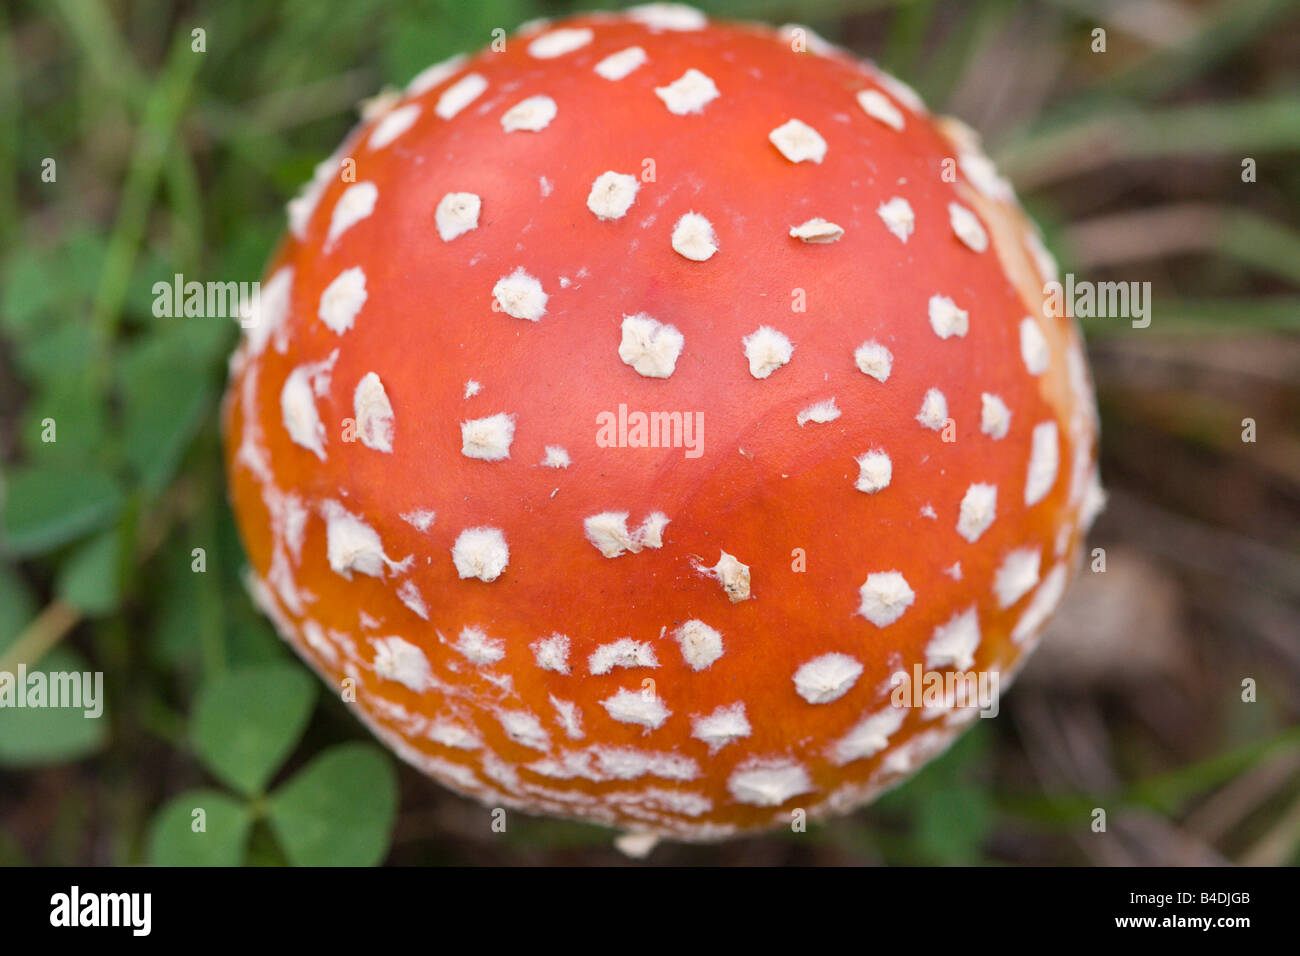 Amanita Verna Stock Photos & Amanita Verna Stock Images - Alamy